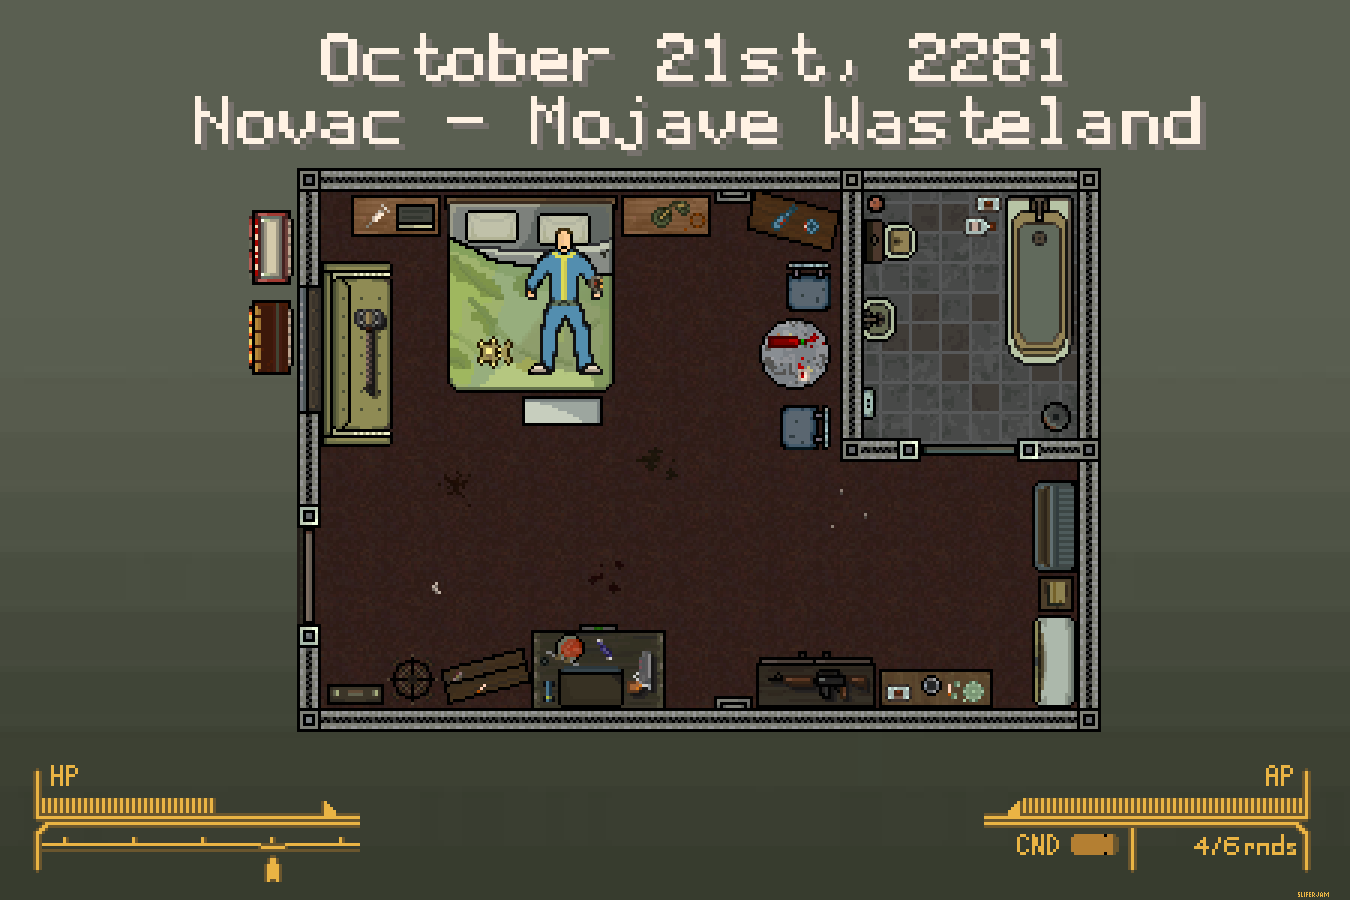 This fallout and hotline miami mash up needs to happen